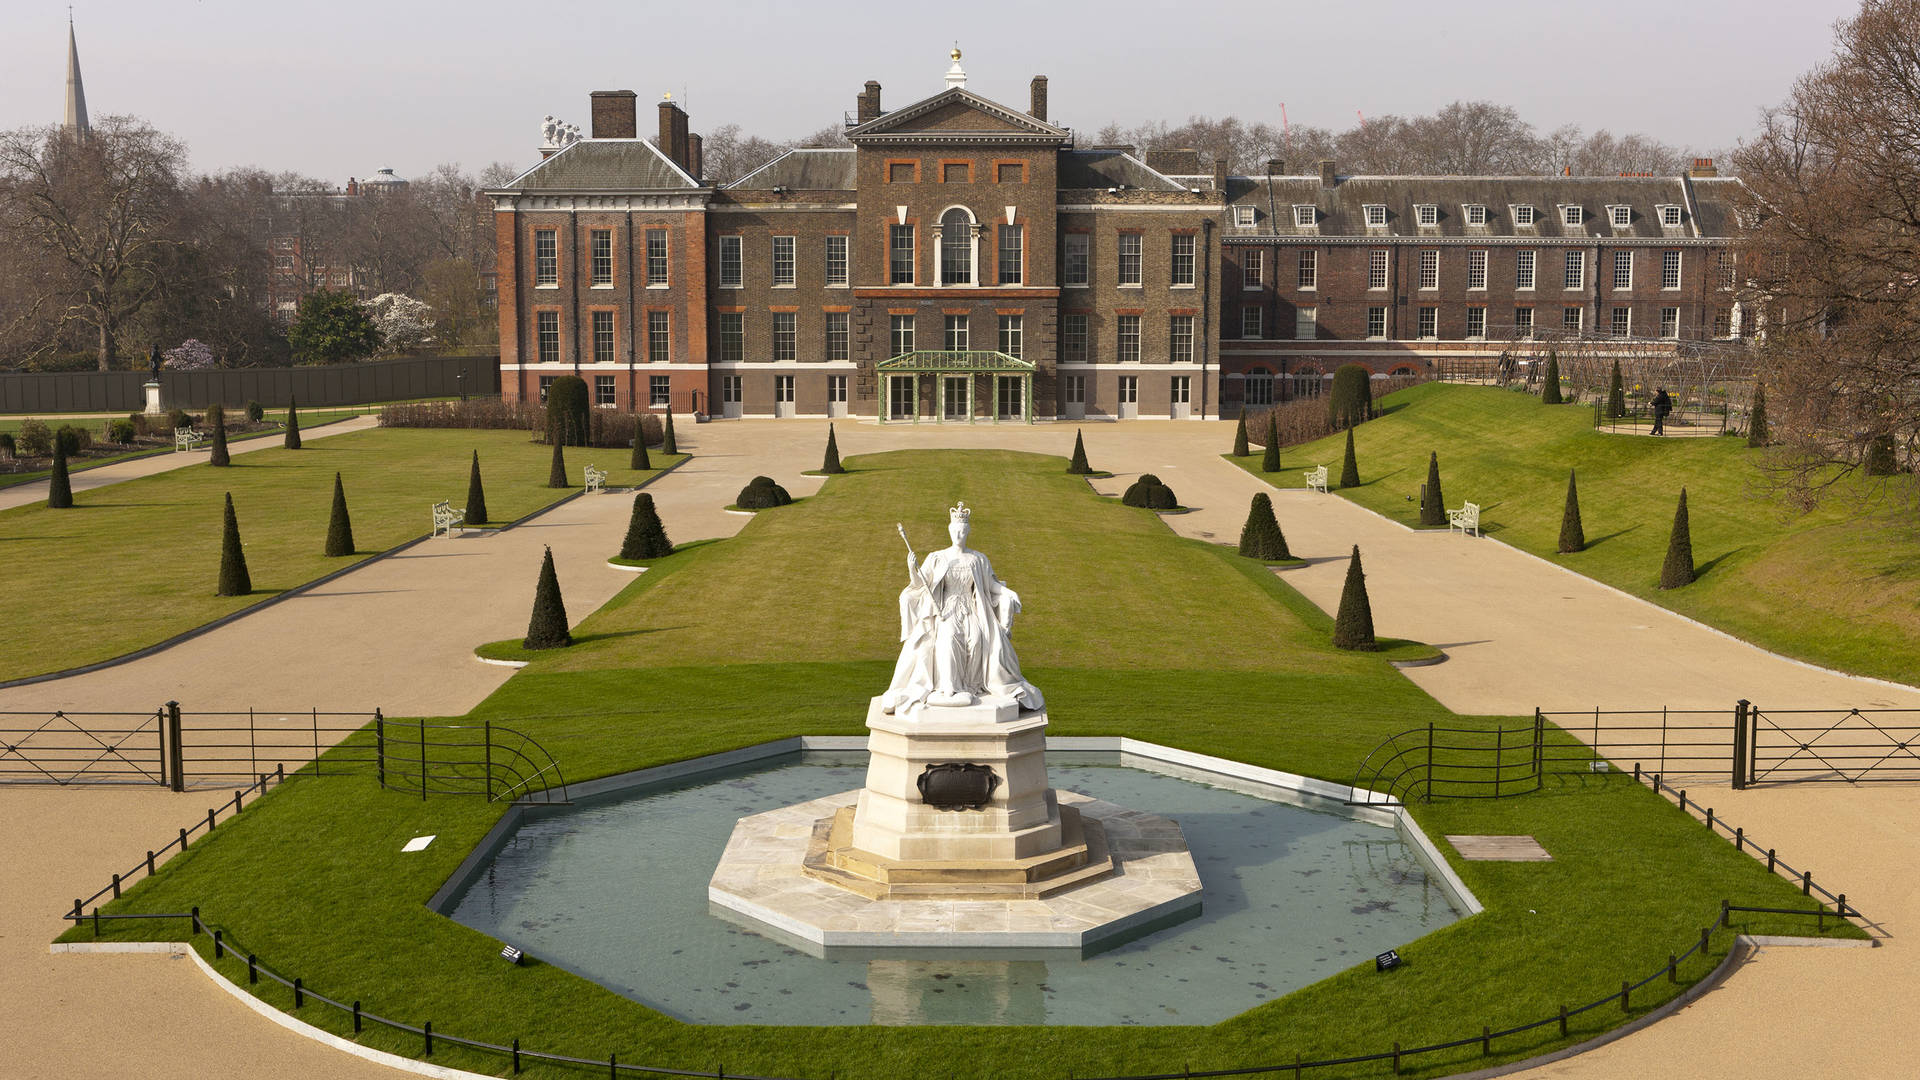 kensington palace hyde park